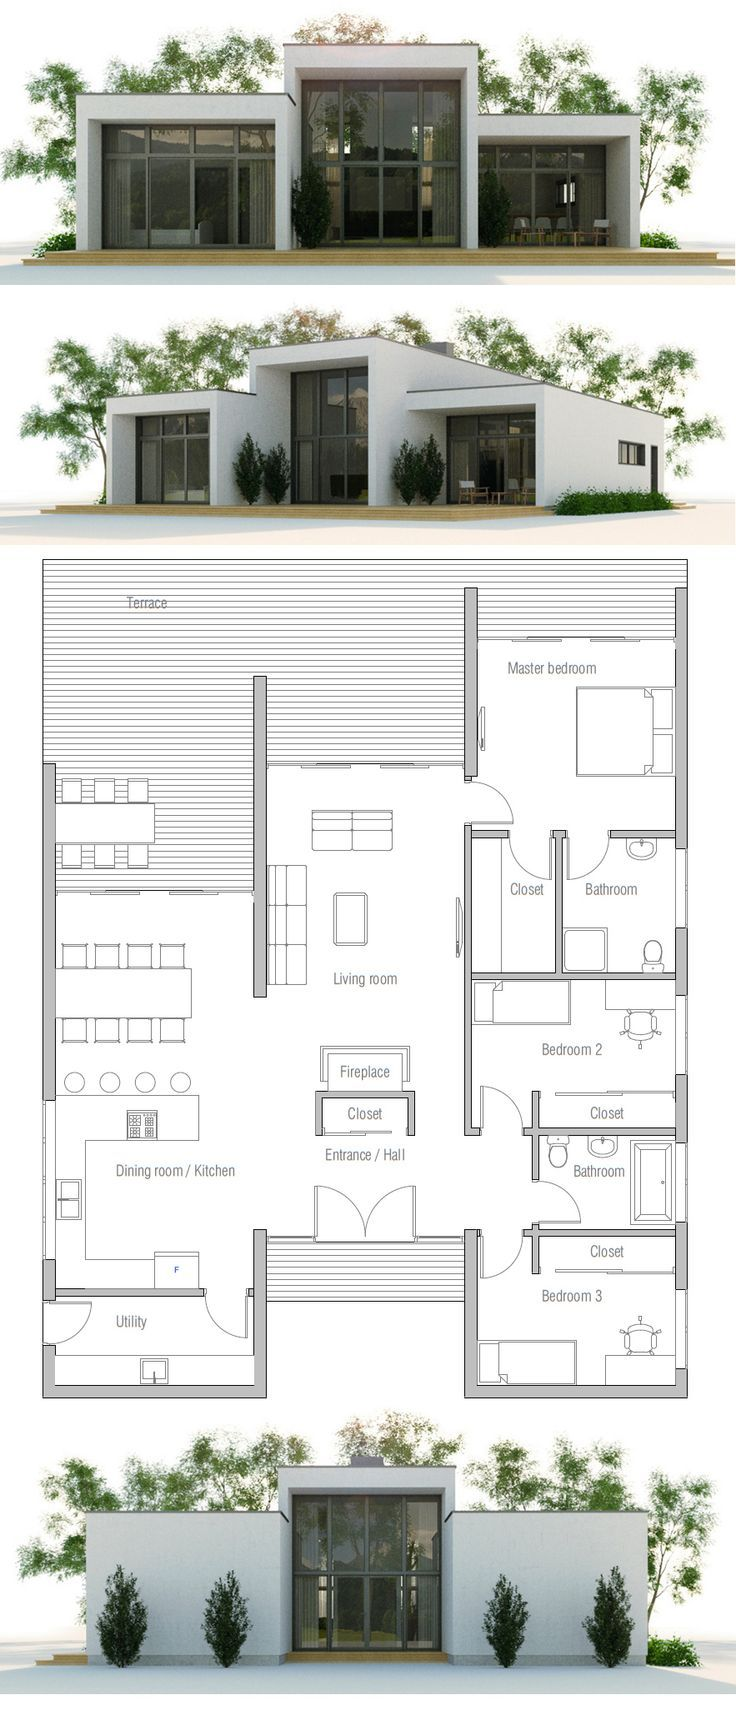 Floor Plan Designs For Homes best 25+ site plans ideas on pinterest | site plan drawing, urban